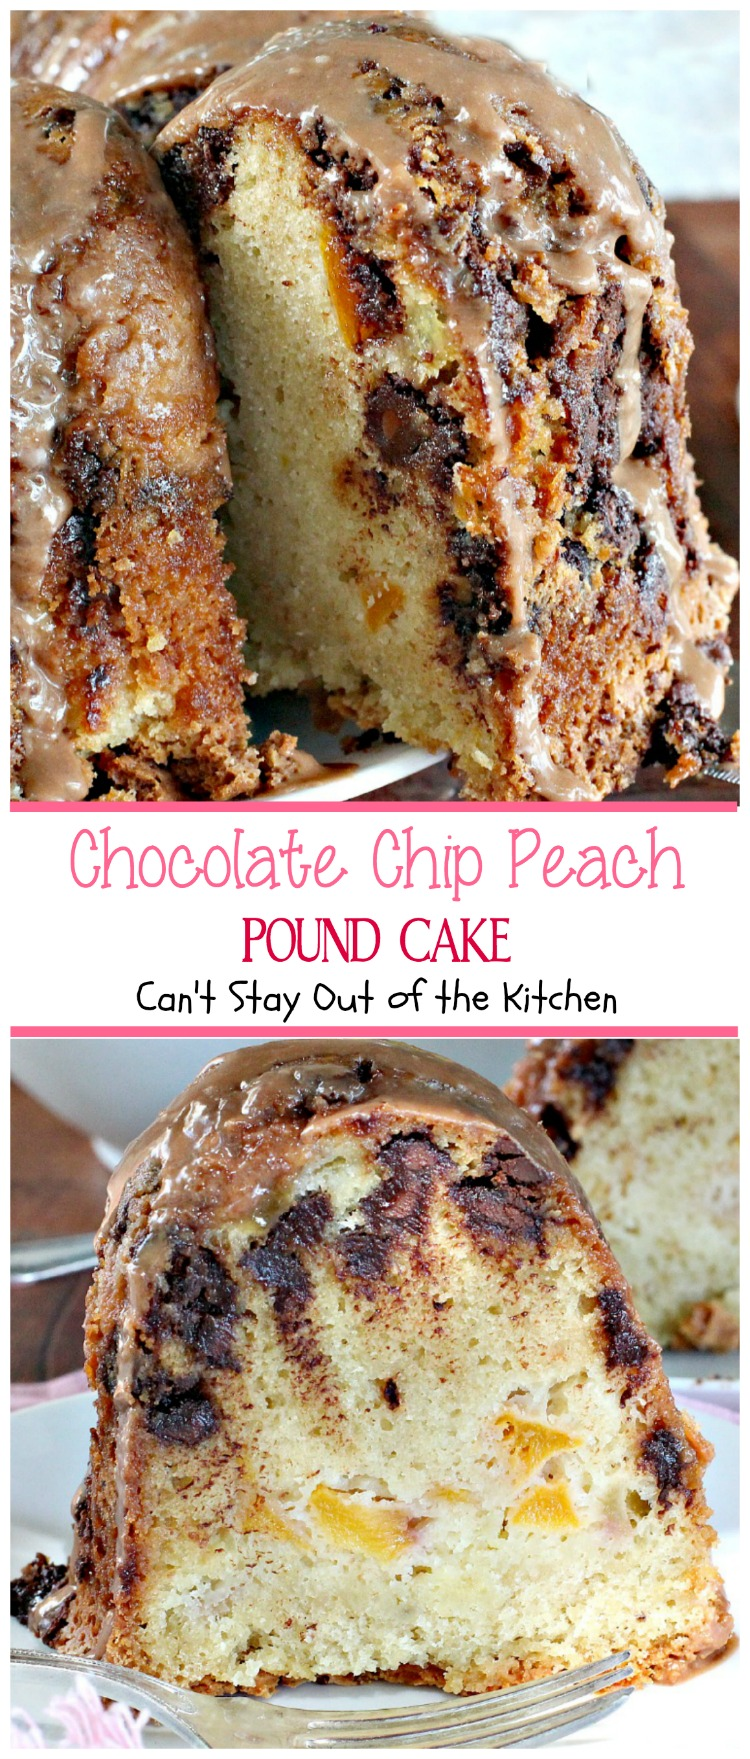 Chocolate Chip Peach Pound Cake - Can't Stay Out of the Kitchen